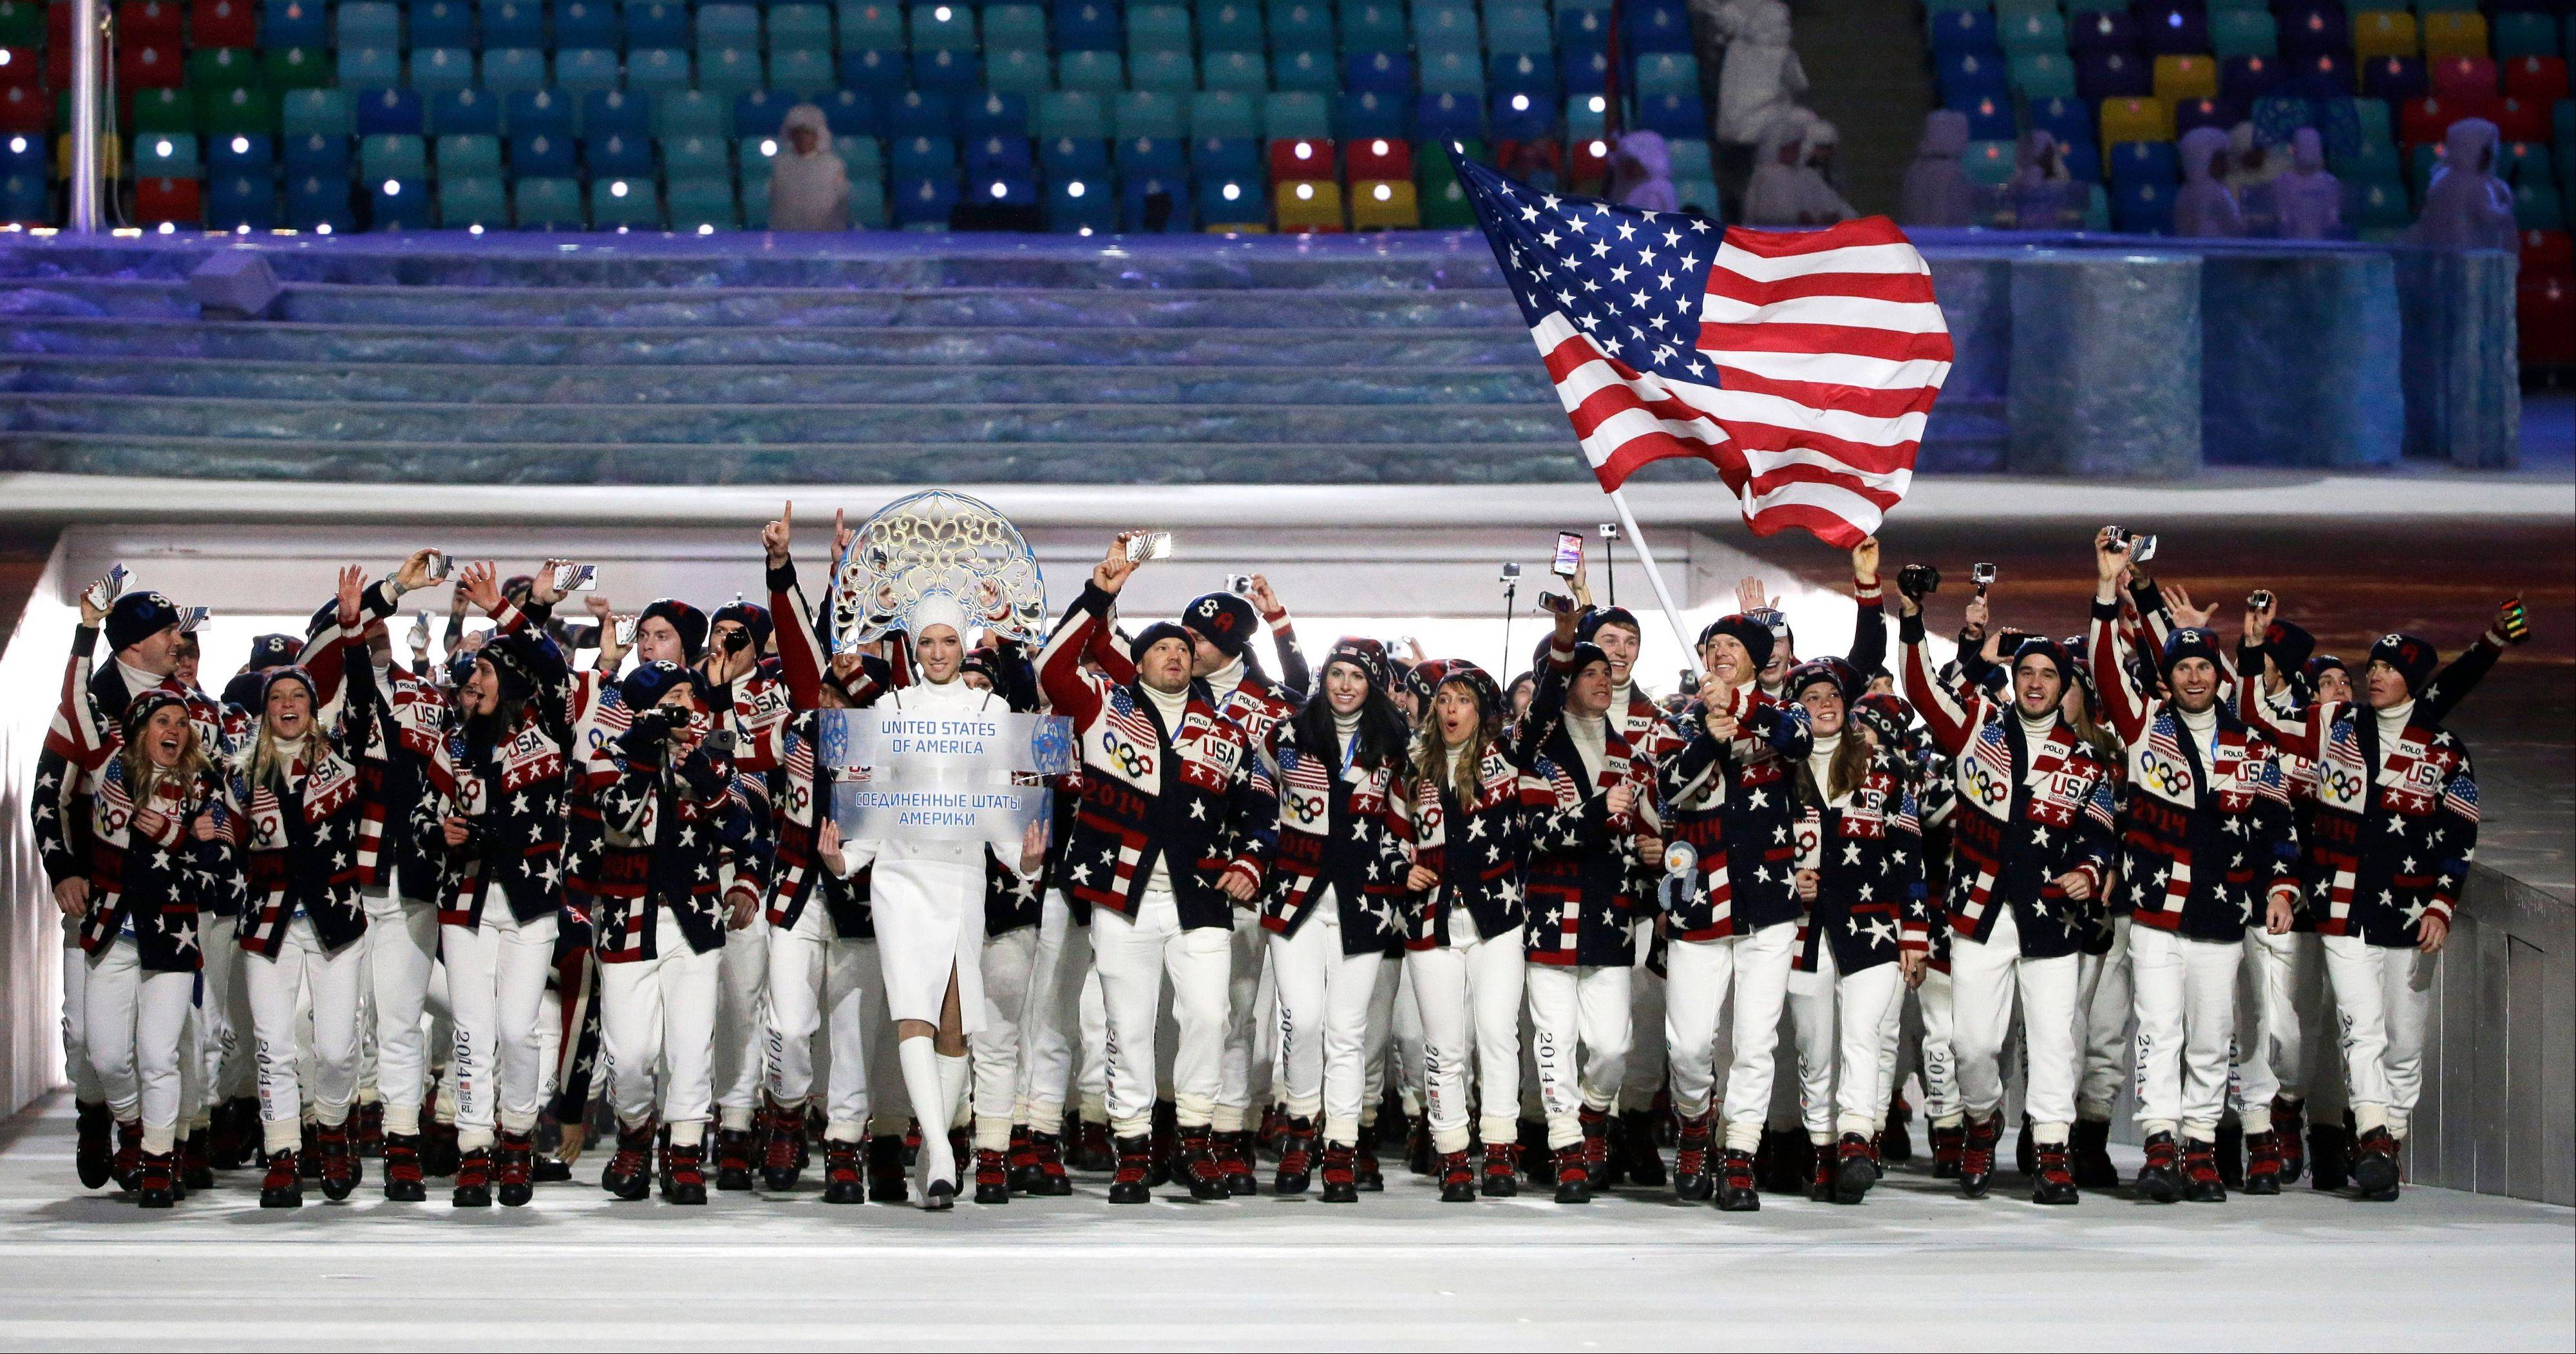 Todd Lodwick of the United States carries the national flag as he leads the team during the opening ceremony.